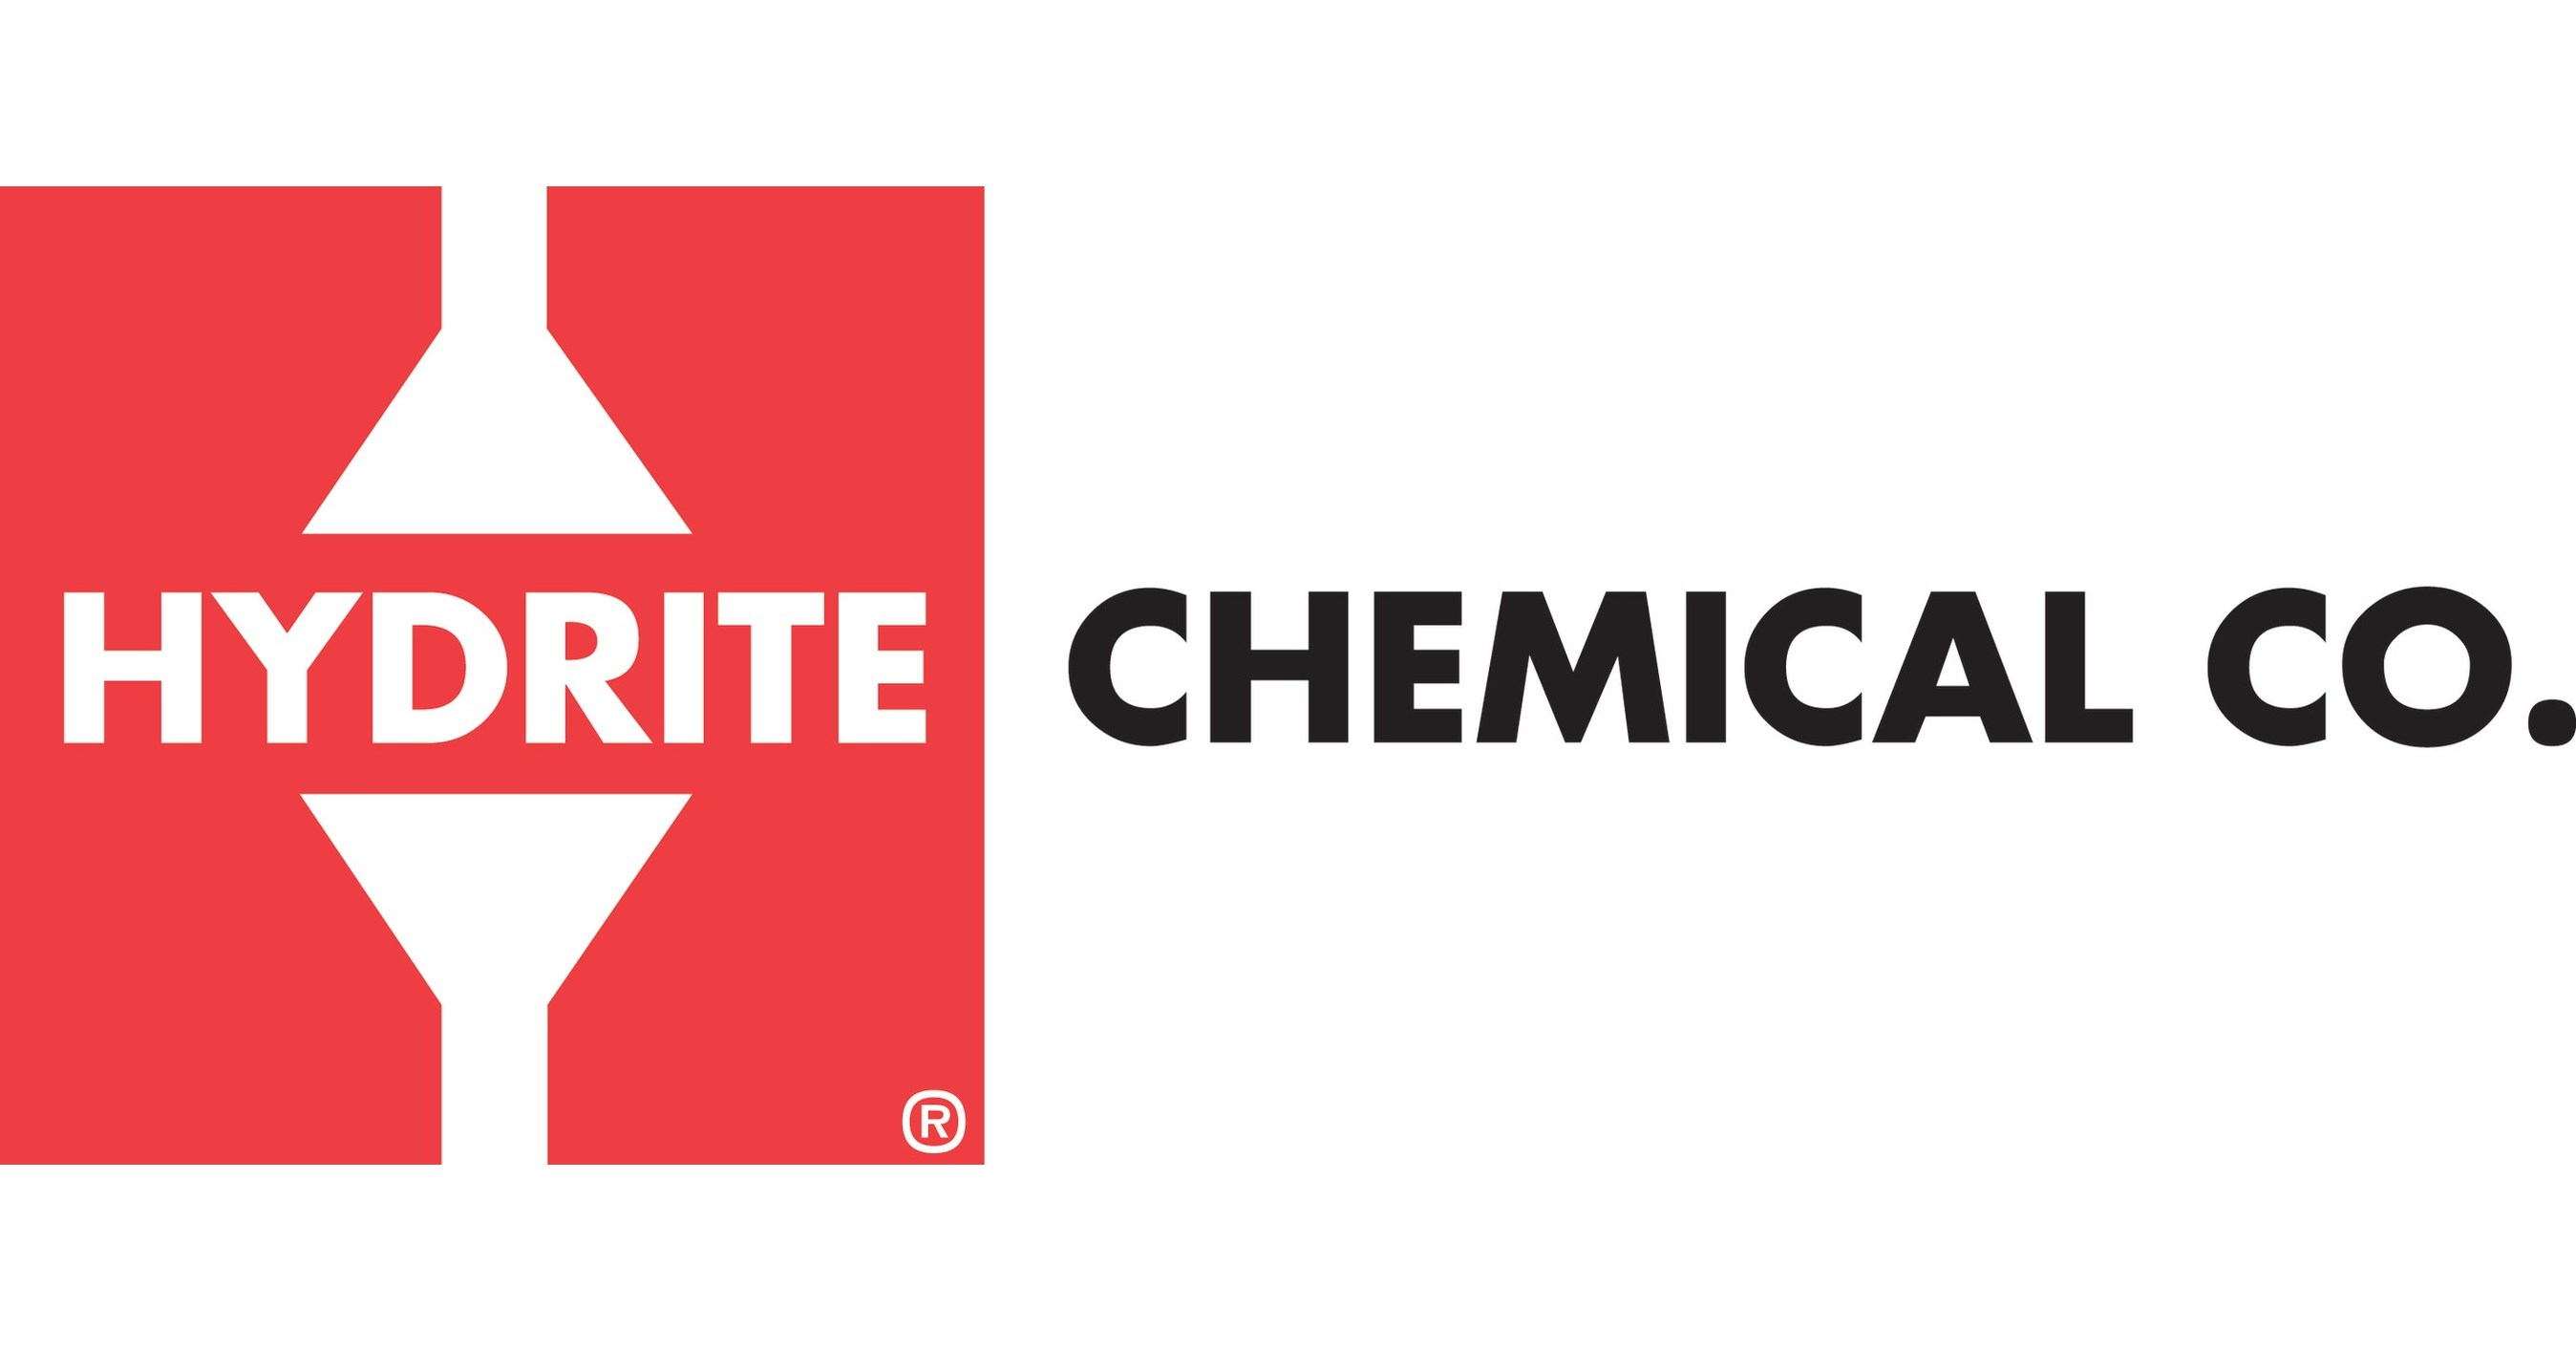 Hydrite Chemical Co. Purchases SERVCO Chemical